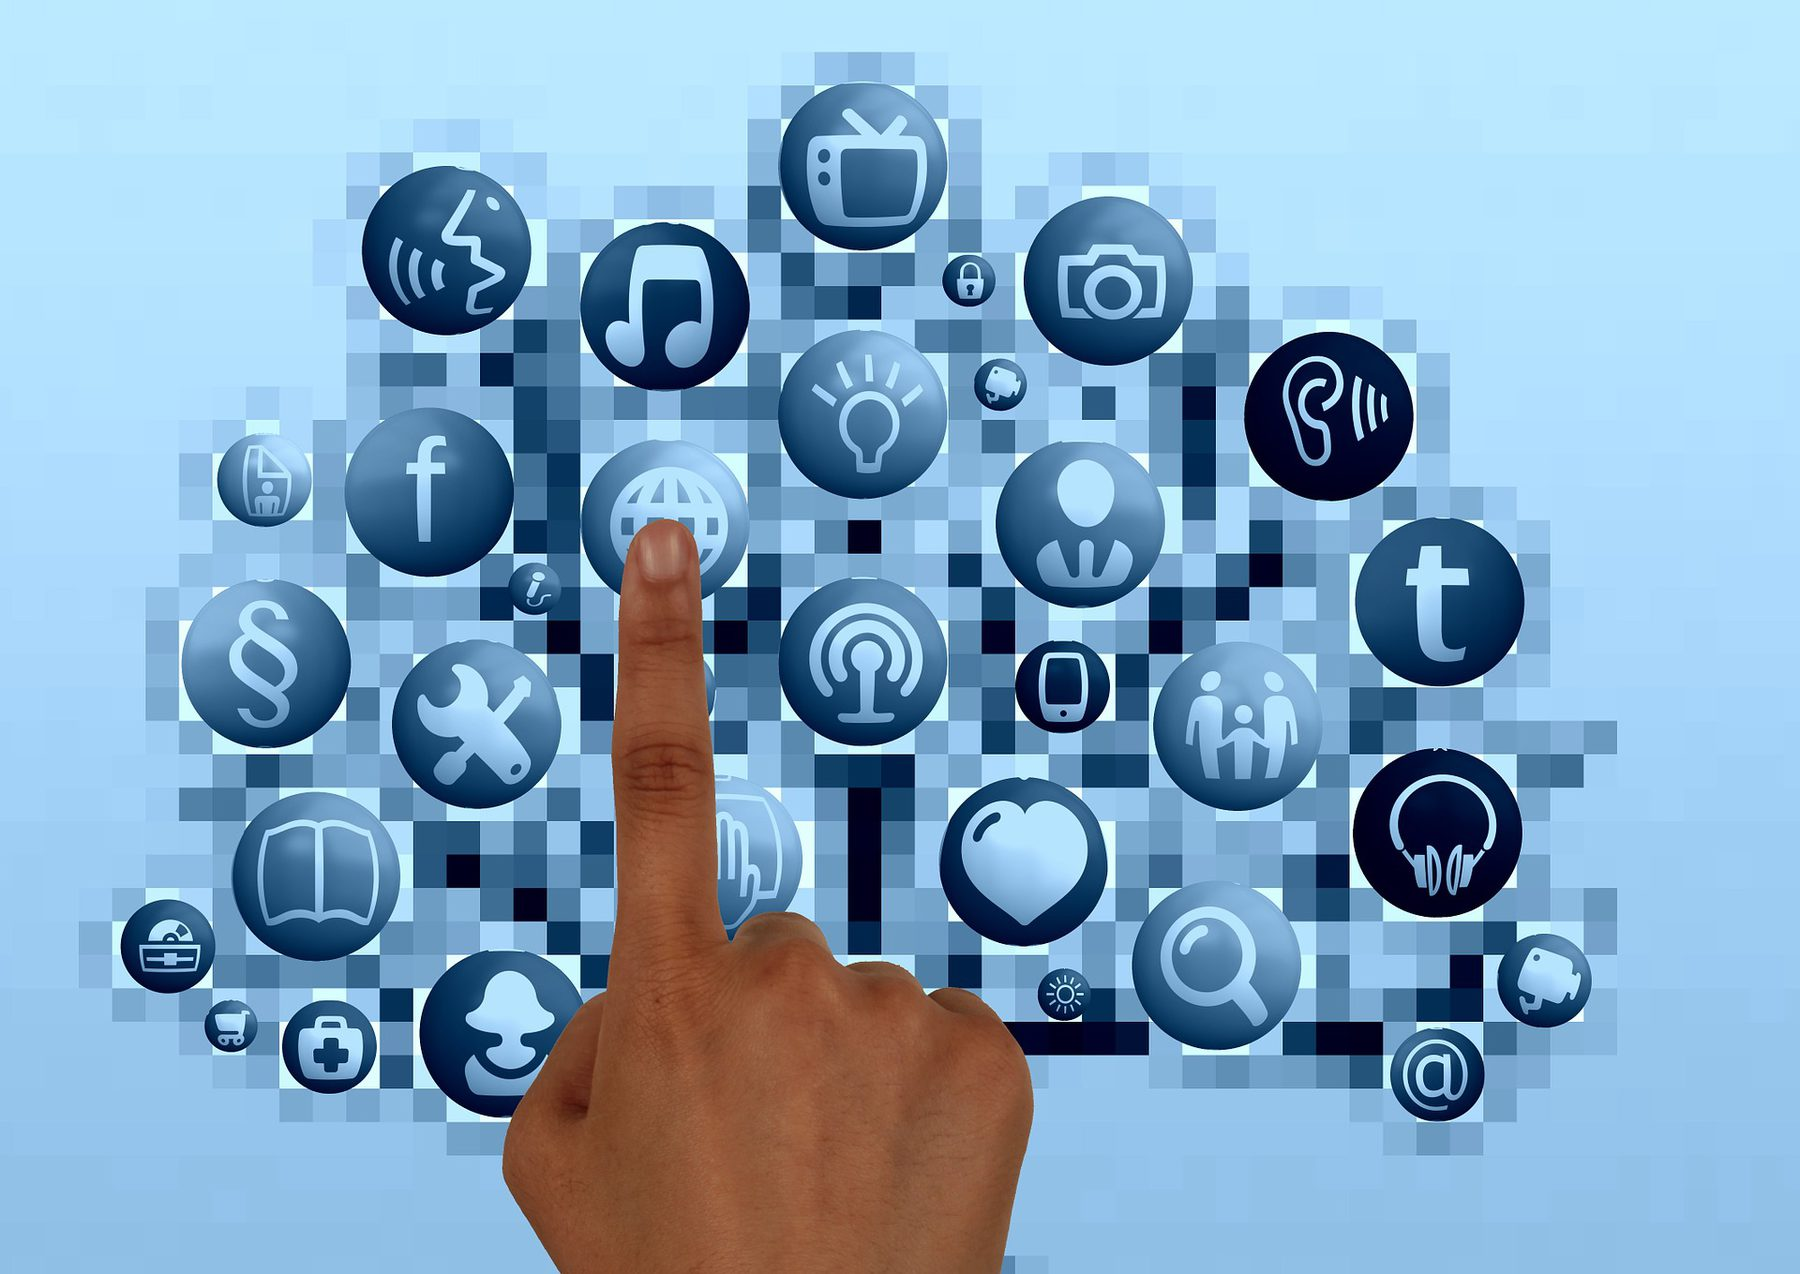 Site Image (Options, Finger, Icons, Choice, Choose, Interests, Careers, Touch, Touchscreen, Select, Selection)